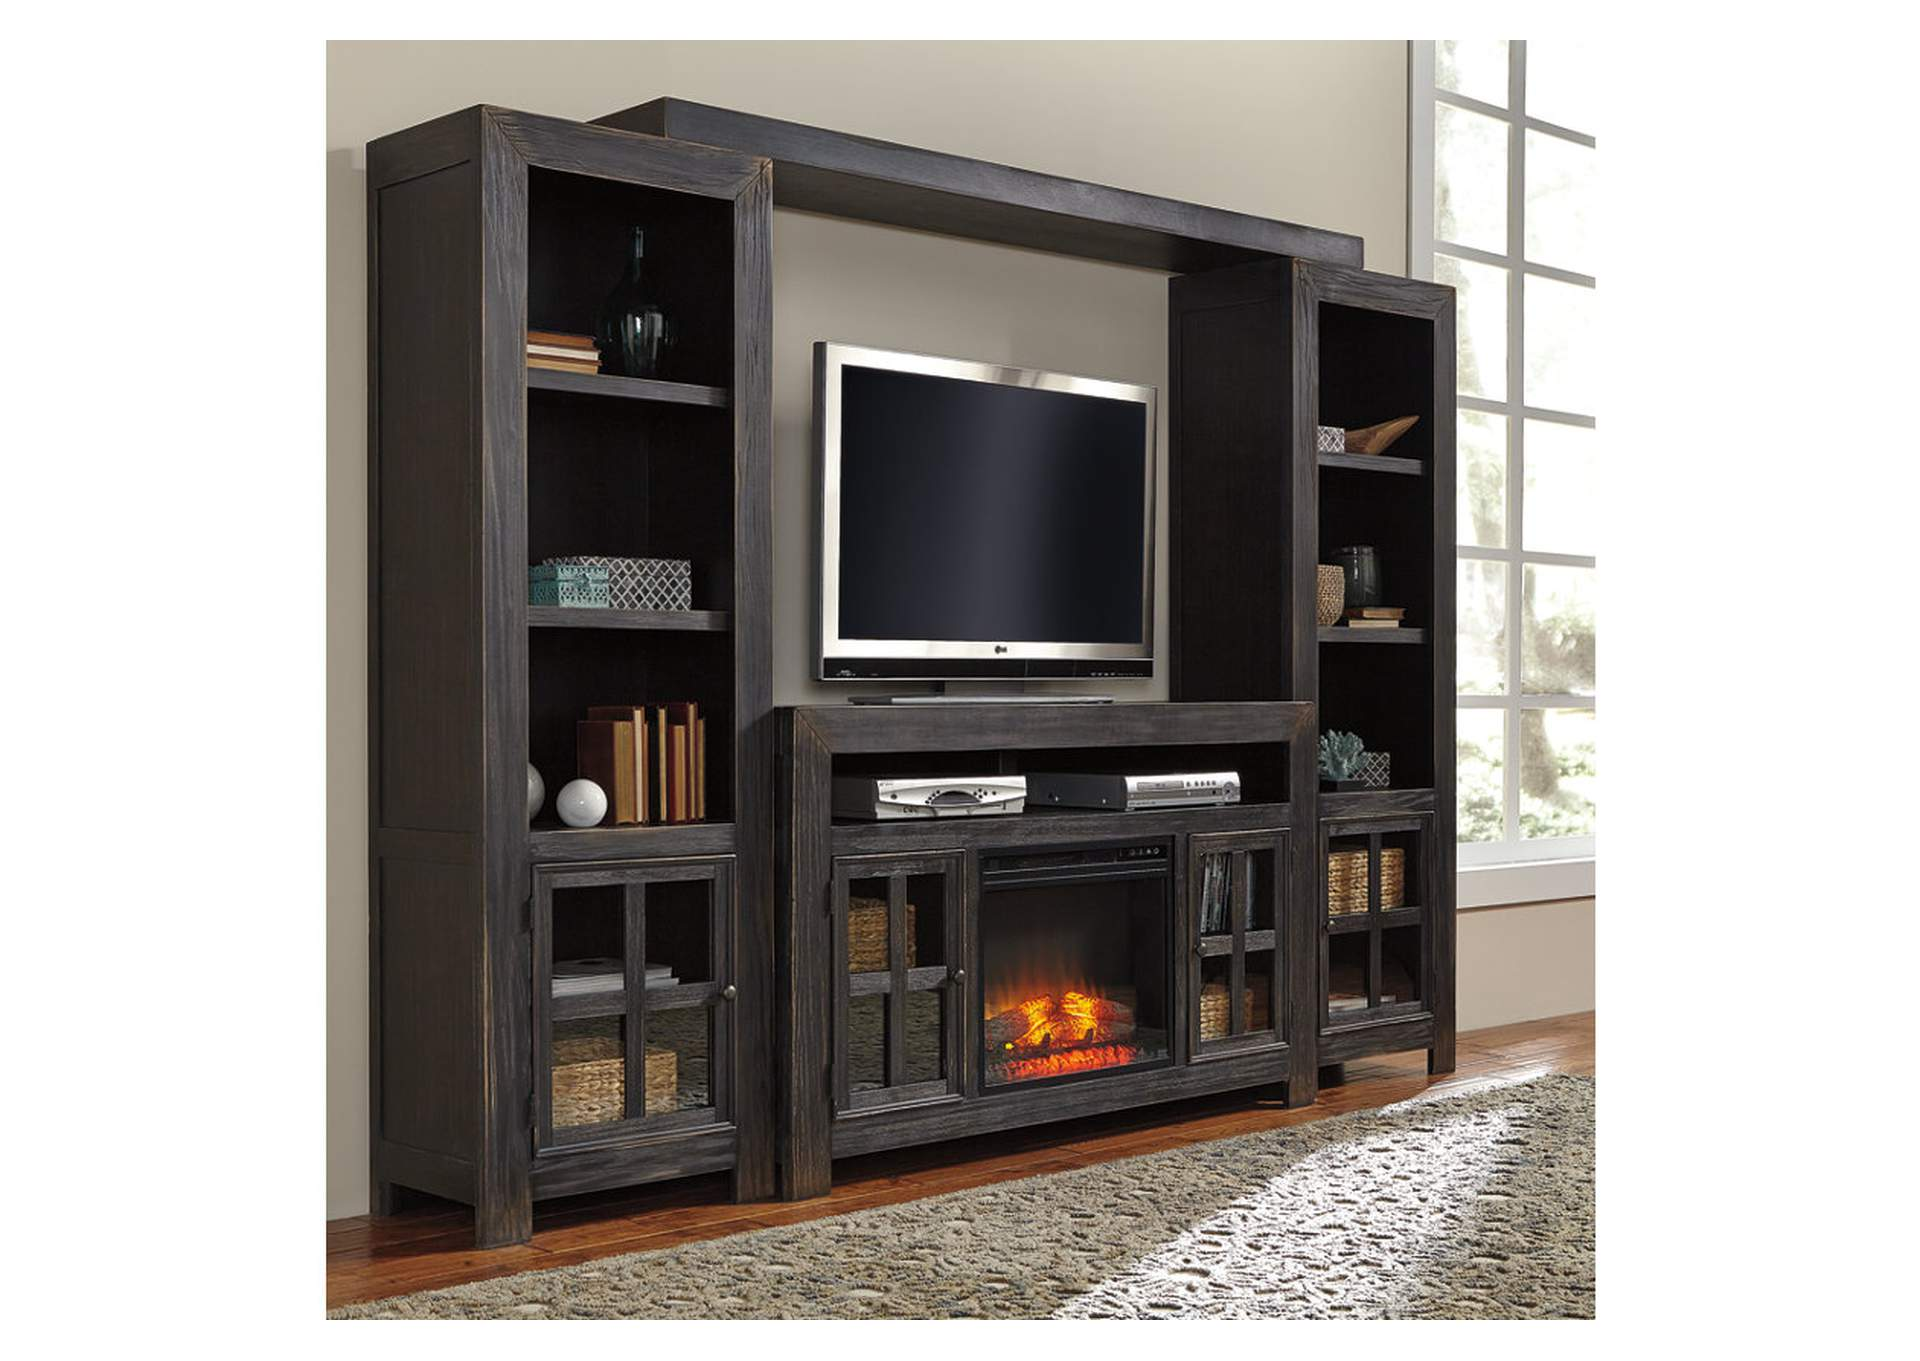 Gavelston Black Entertainment Center w/ LED Fireplace Insert,Signature Design By Ashley